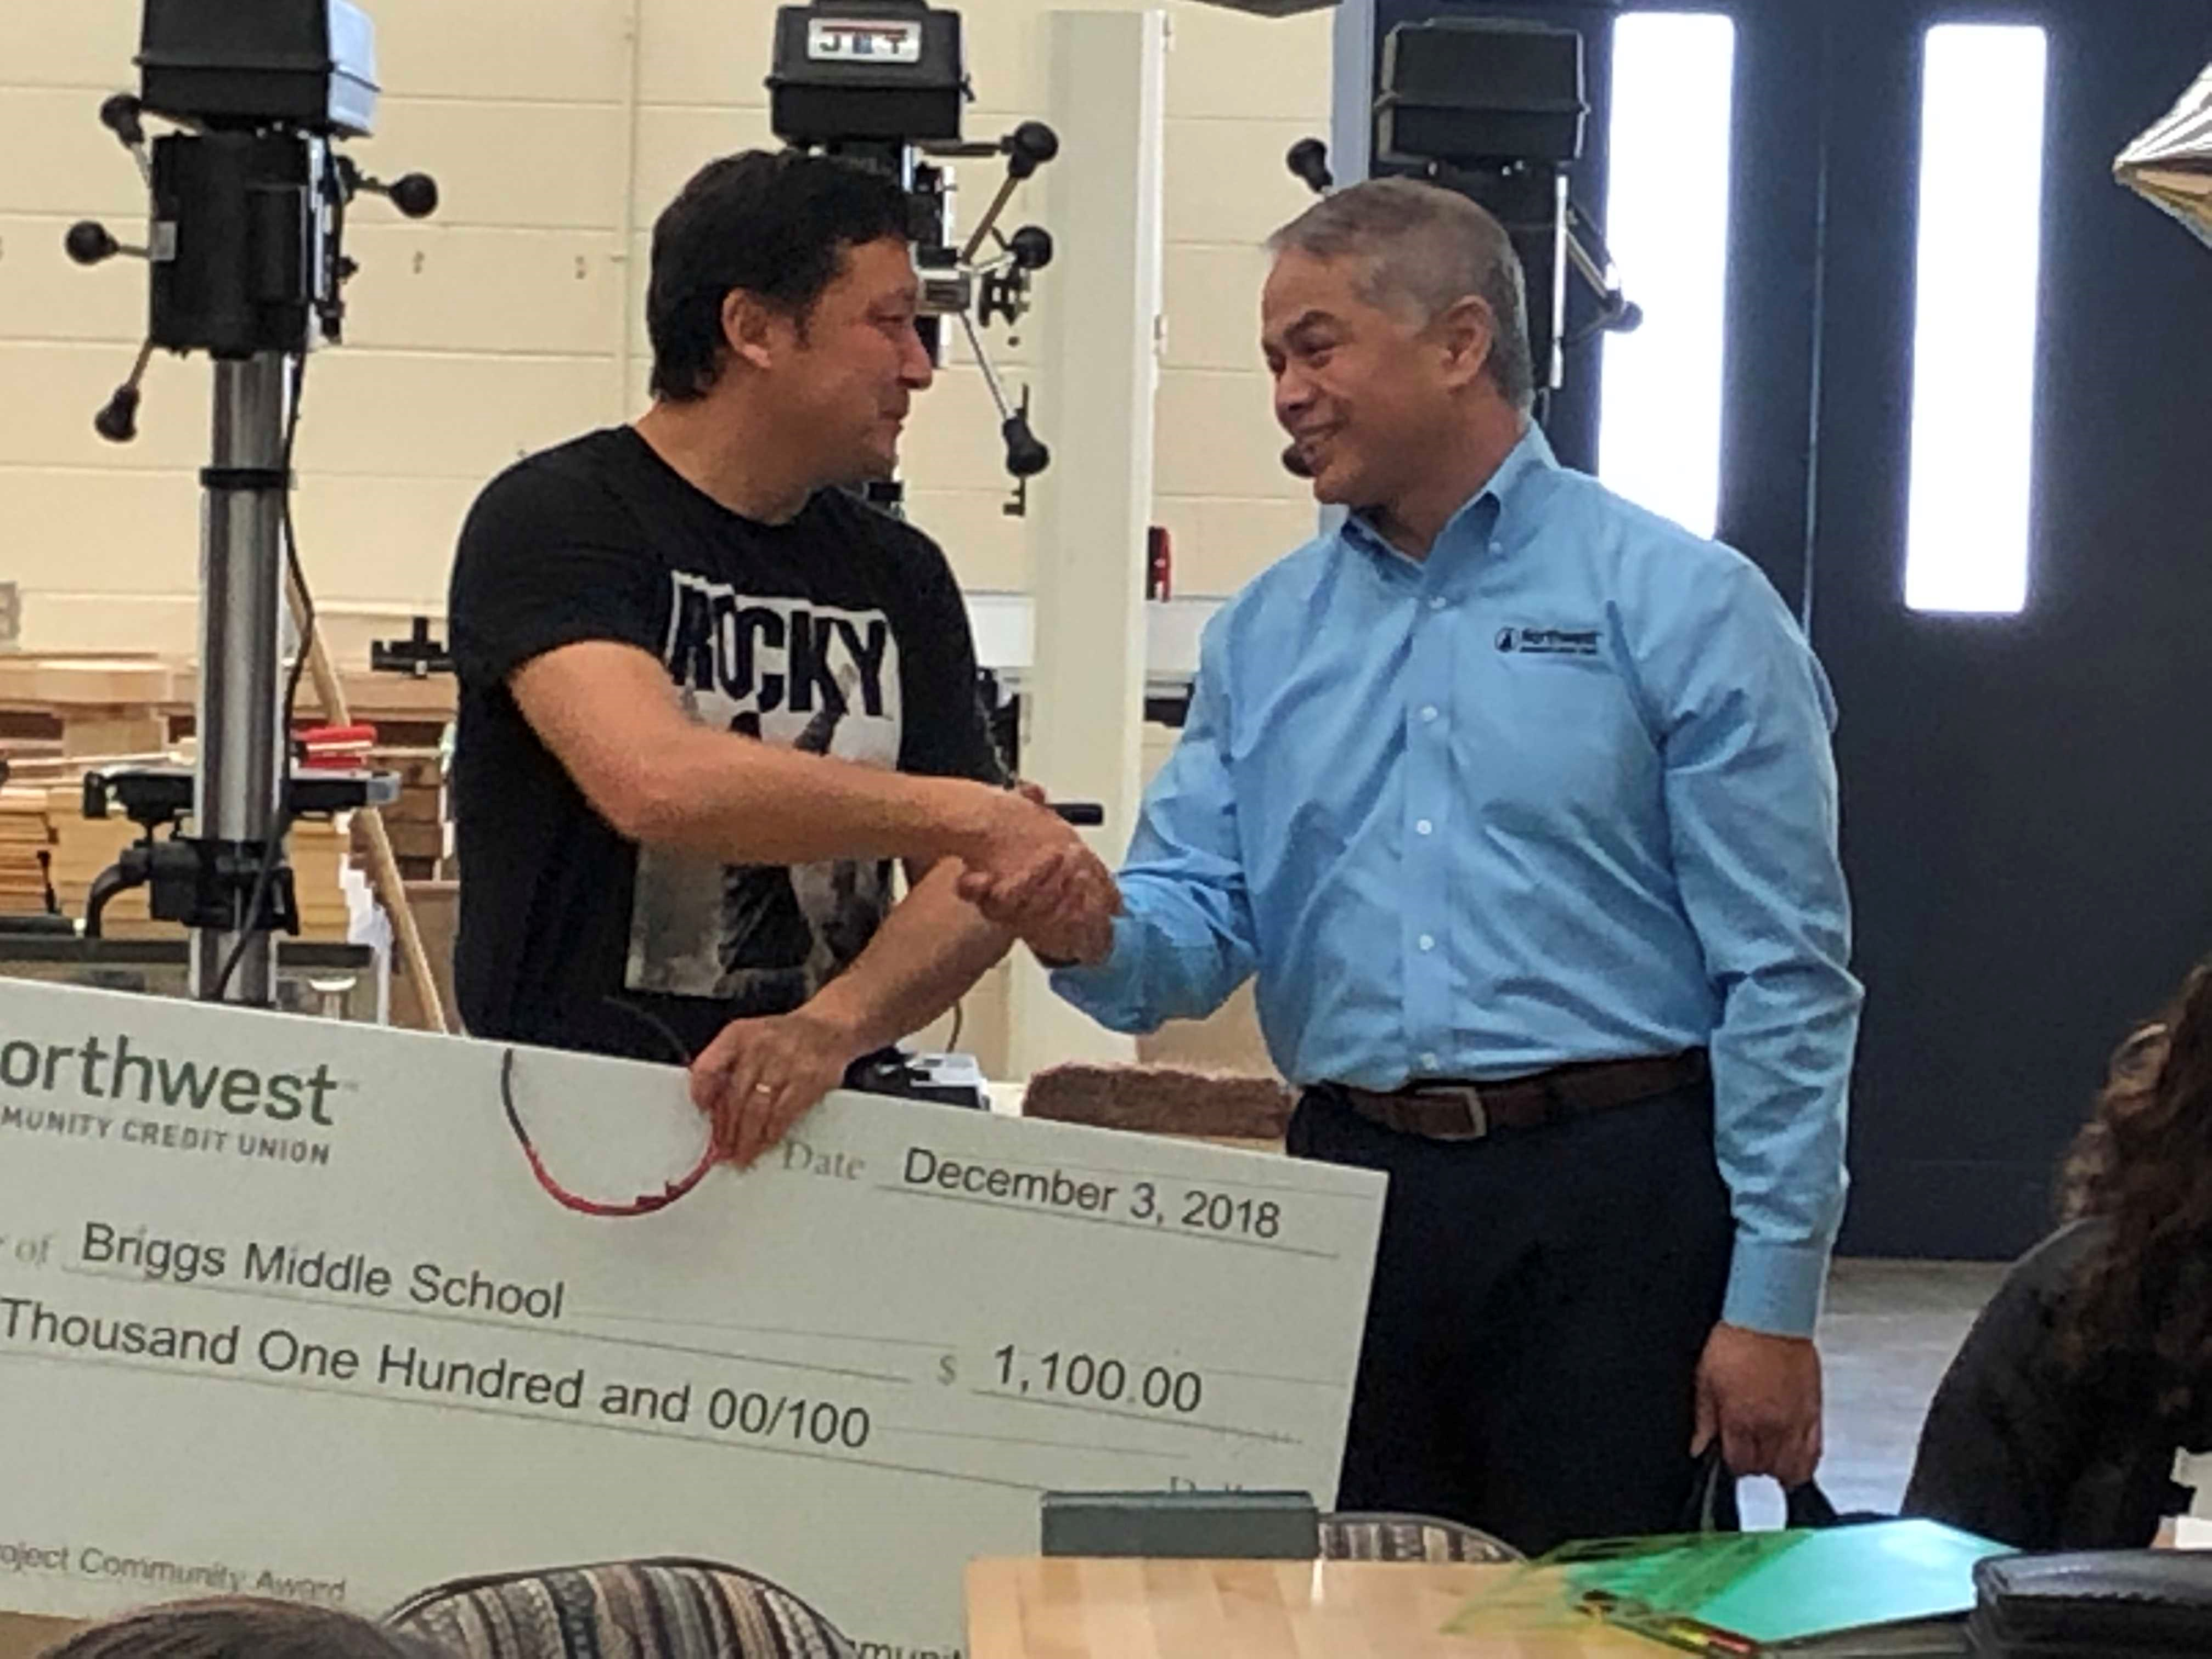 NWCU CEO John D. Iglesias shaking hands and presenting an oversize check to Joe Hass in his classroom